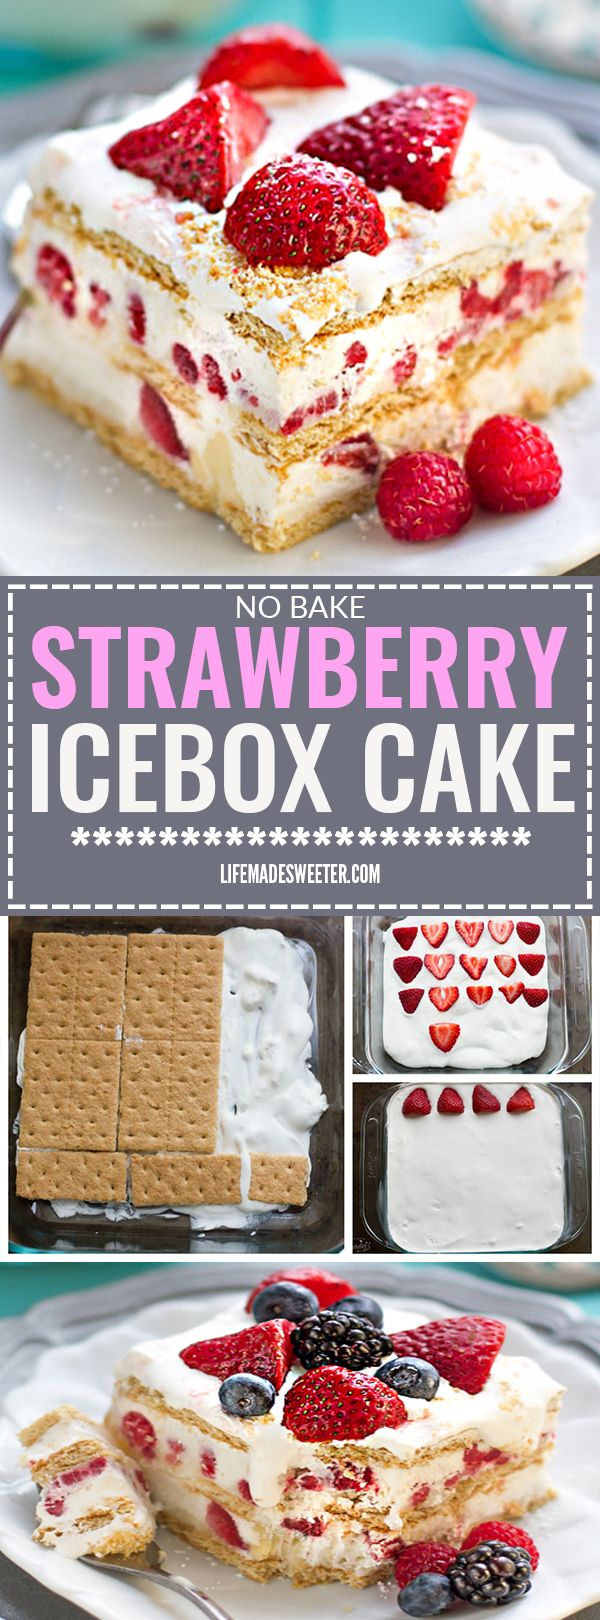 No BAKE Strawberry Cheesecake Icebox Cake is the perfect EASY dessert for spring and summer potlucks, cookouts, parties, barbecues, picnics, Mother's Day & baby showers. A favorite ice box dessert that only requires 5 ingredients and it's a great make ahead dish with fresh strawberries, whipped cream, cheesecake pudding, and graham crackers or shortbread cookies for the shortcake.